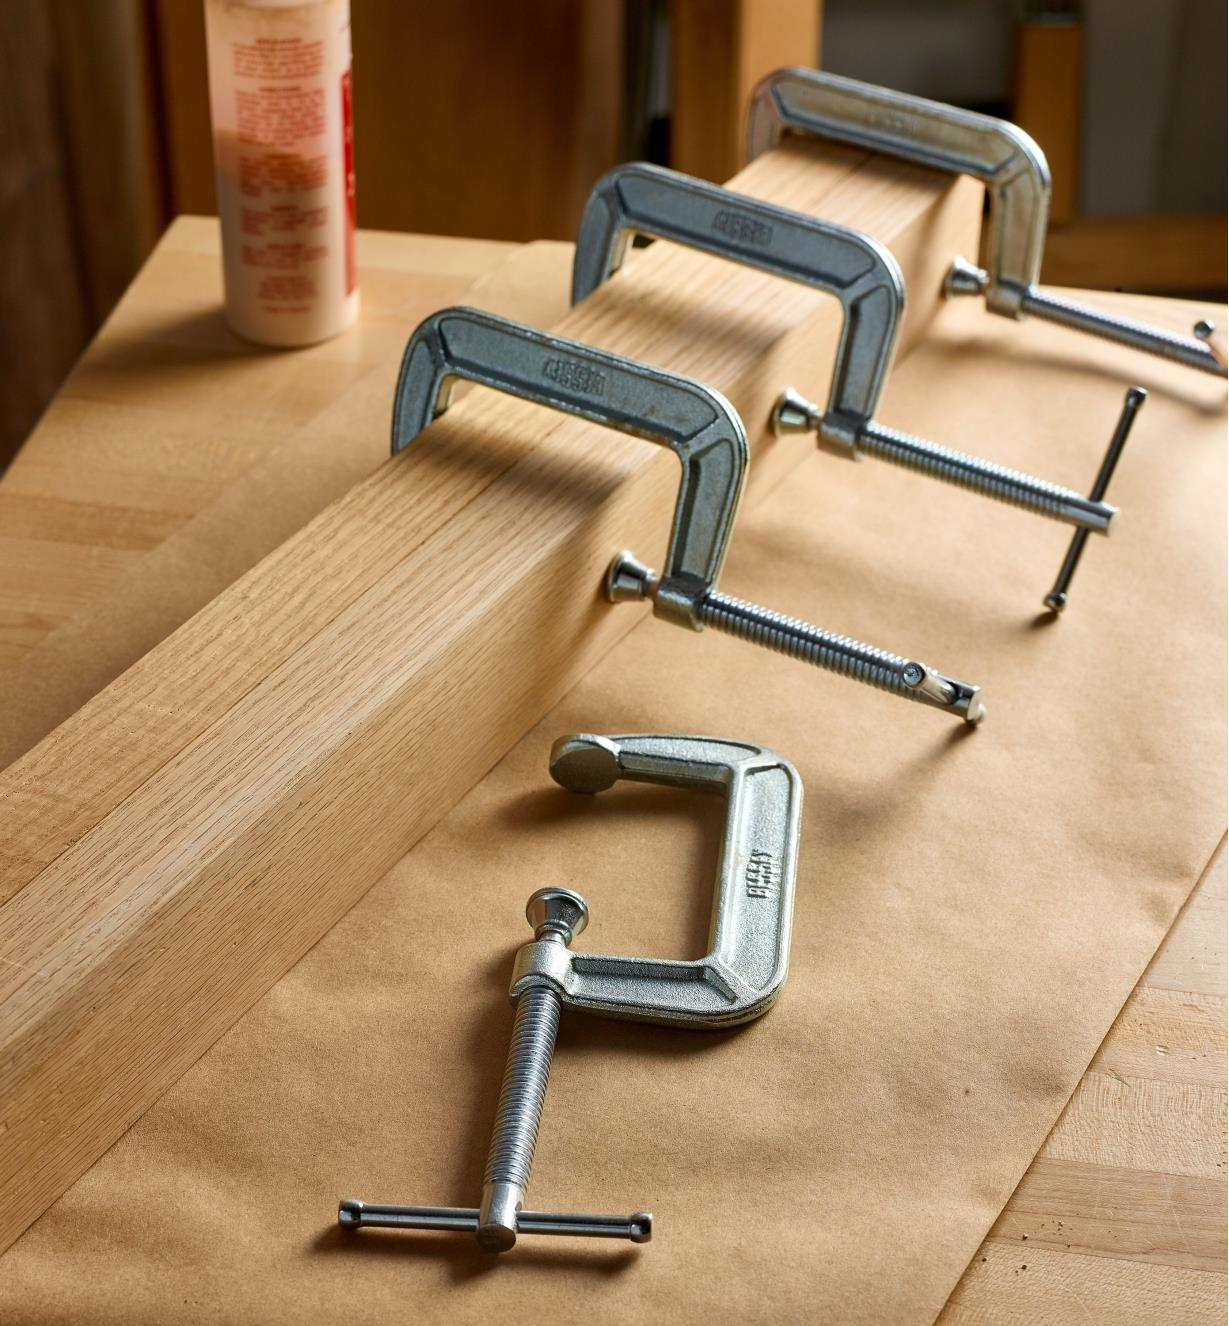 Bessey C-clamps being used to hold a wooden project assembly together during glue-up